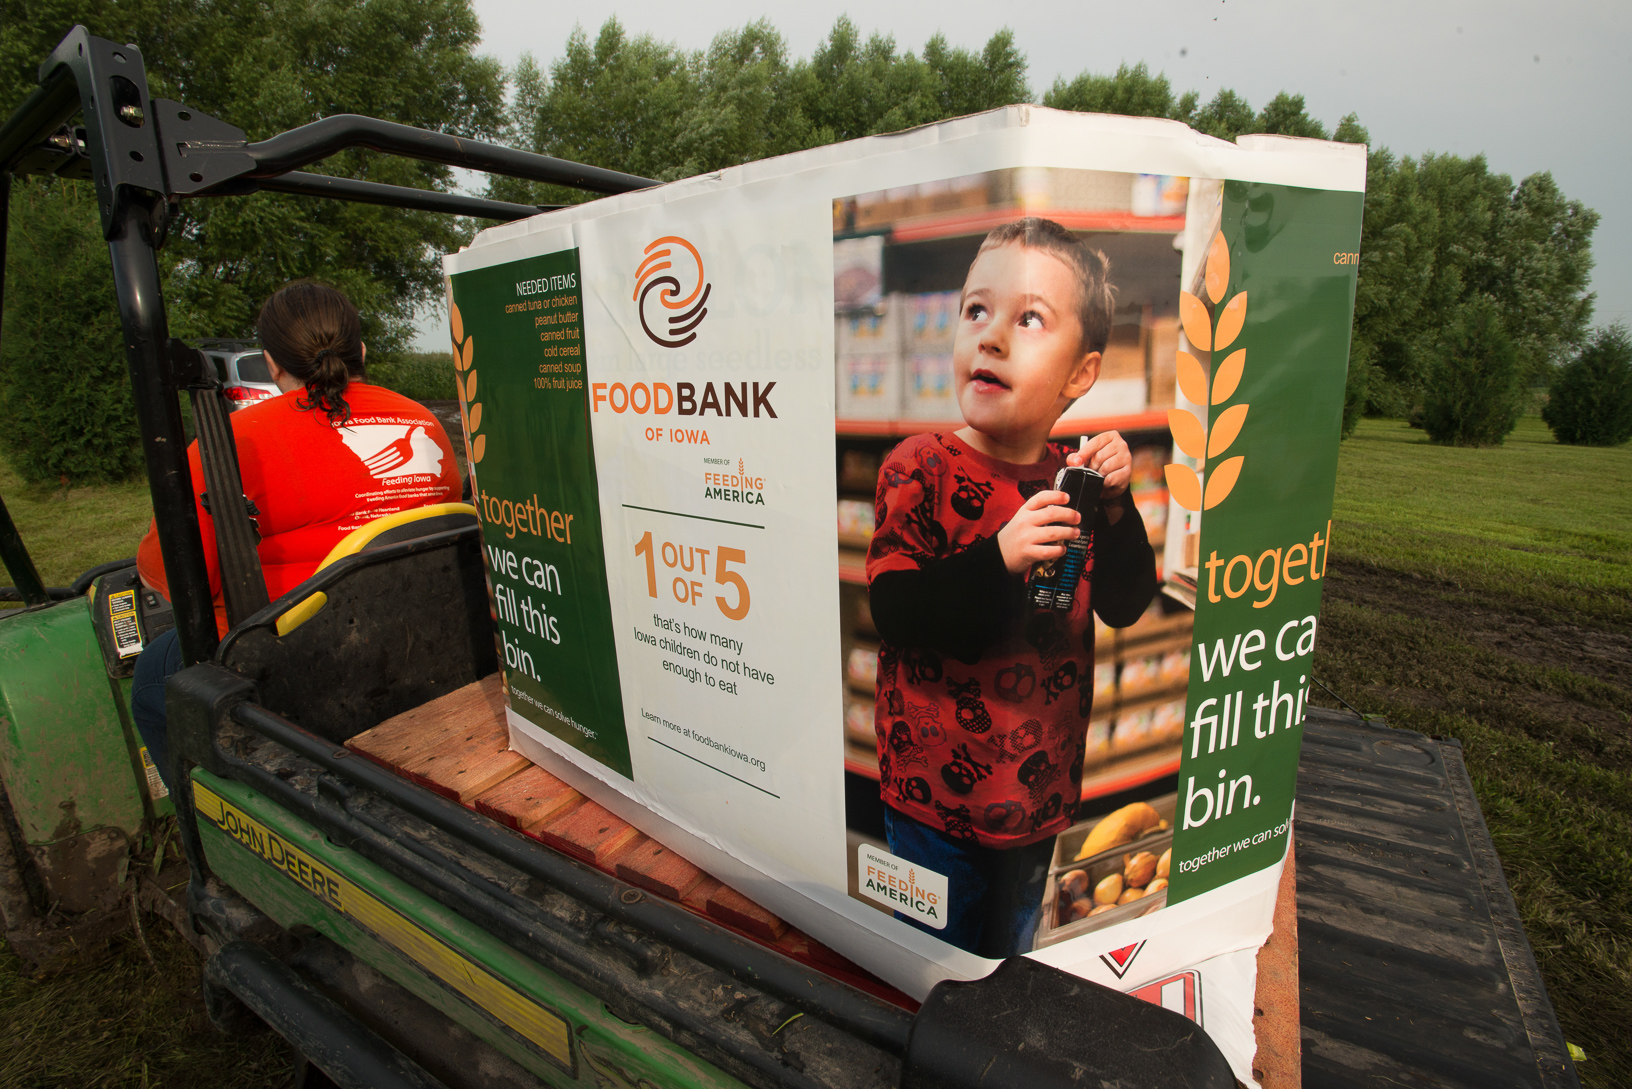 The Van Manen Family Farm grows and harvests sweet corn for the Food Bank of Iowa. Photo credit: Joseph L. Murphy/Iowa Soybean Association